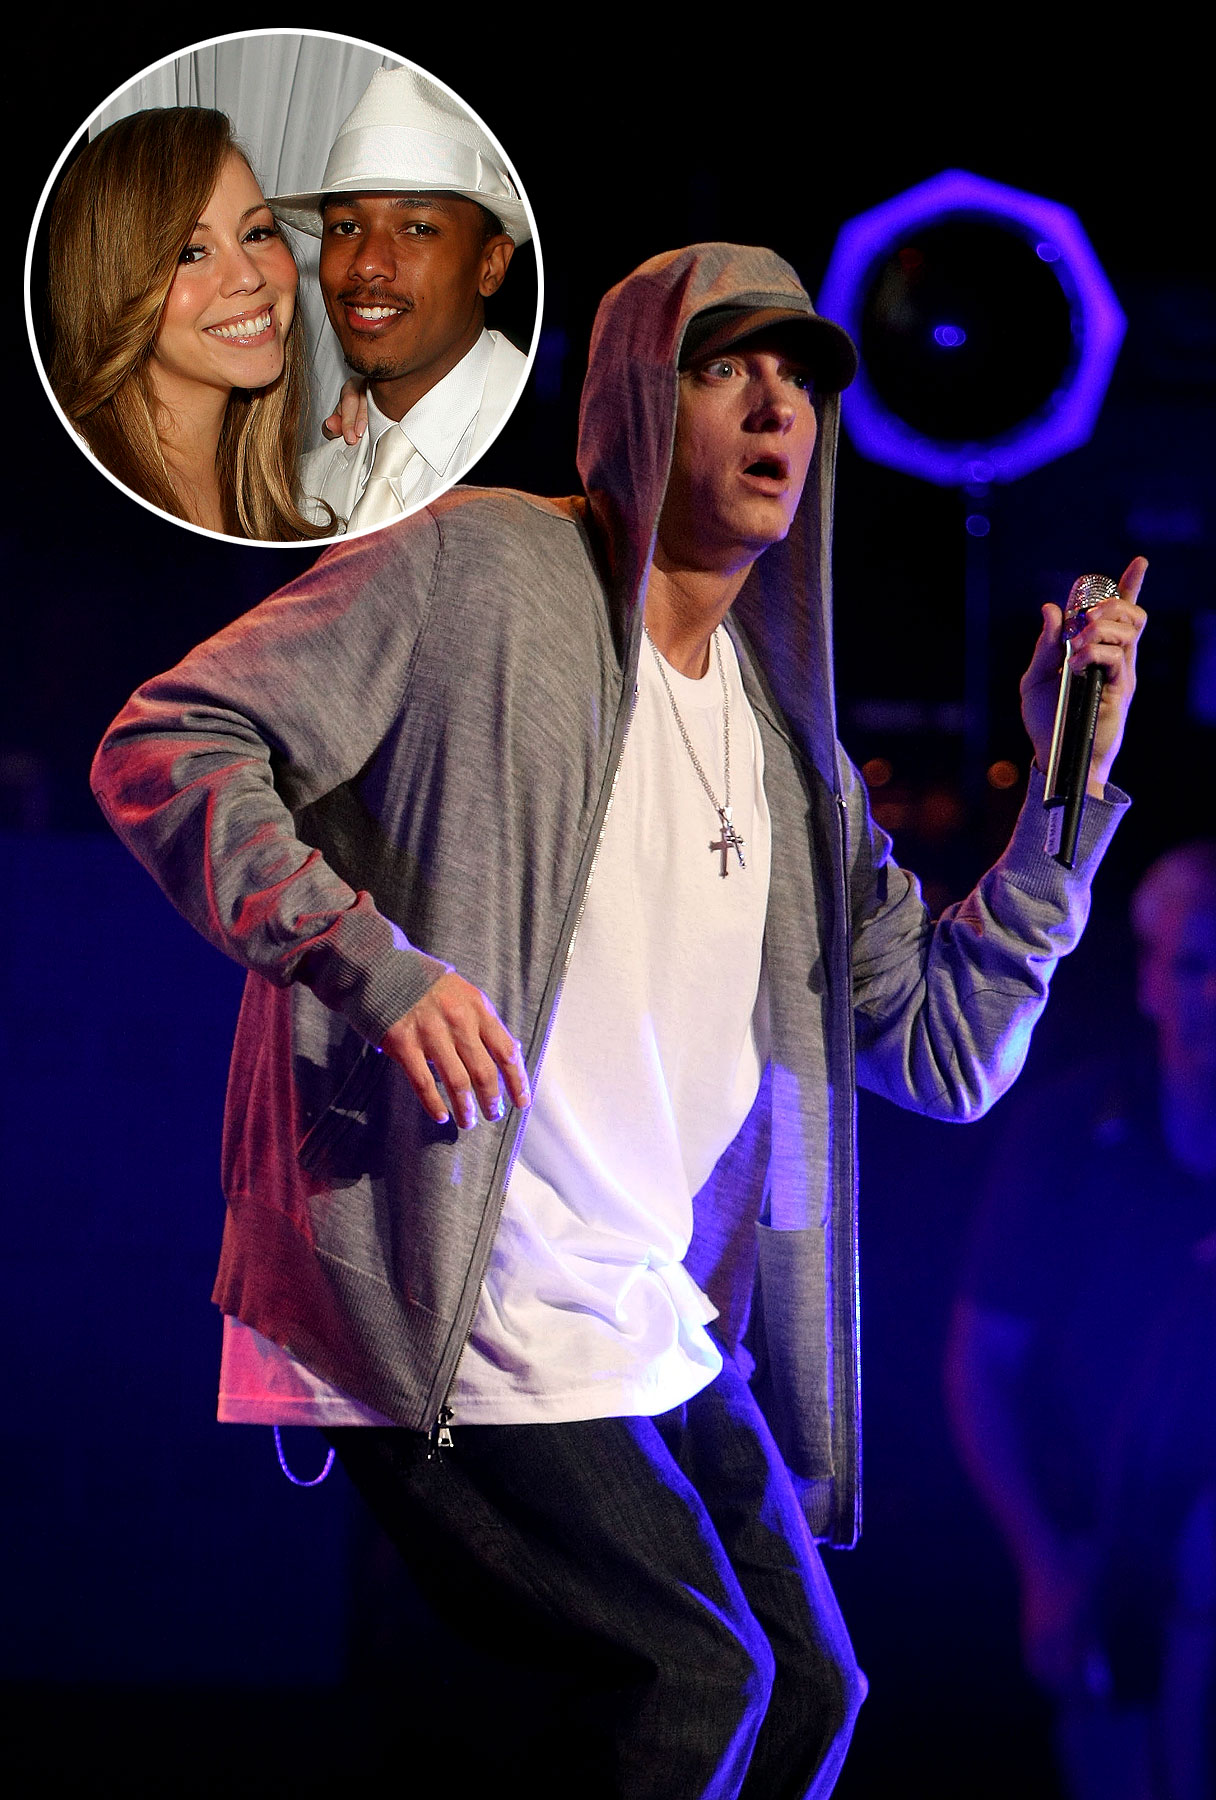 Eminem Threatens Nick Cannon and Mariah Carey In New Single